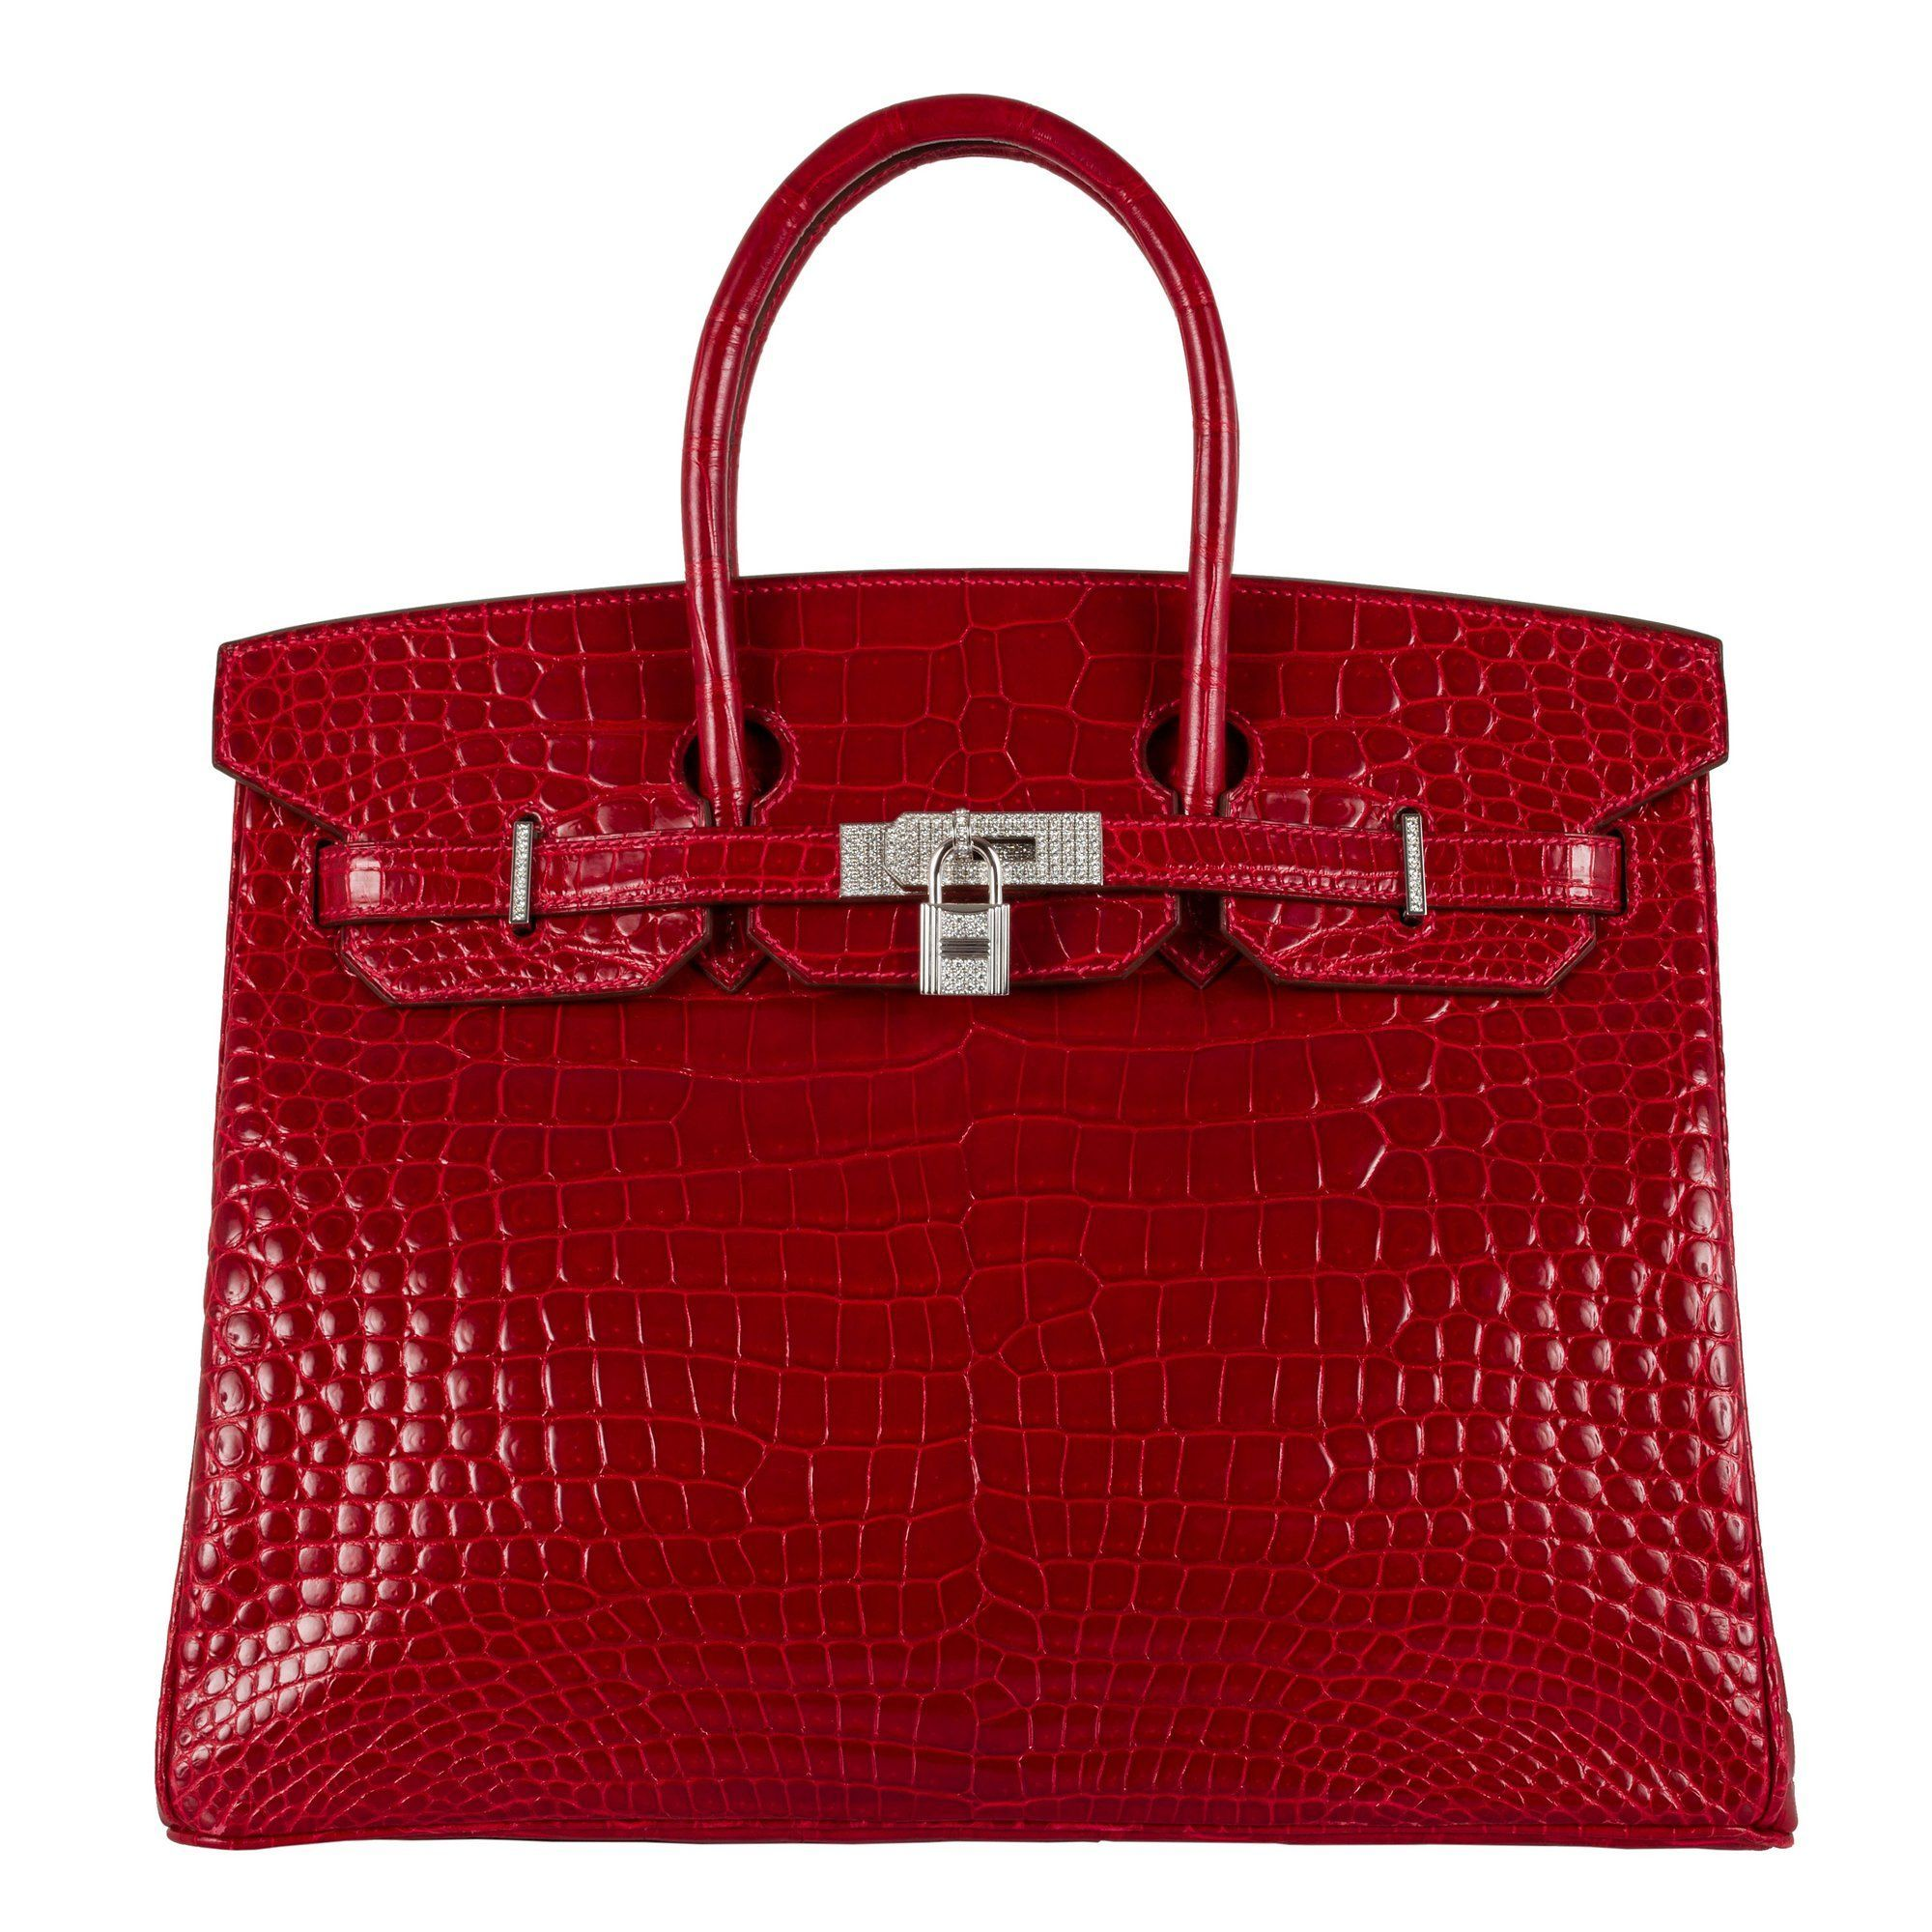 27f64222ebe7 ust 10 months after a pink crocodile Hermès Birkin bag sold for a record   222